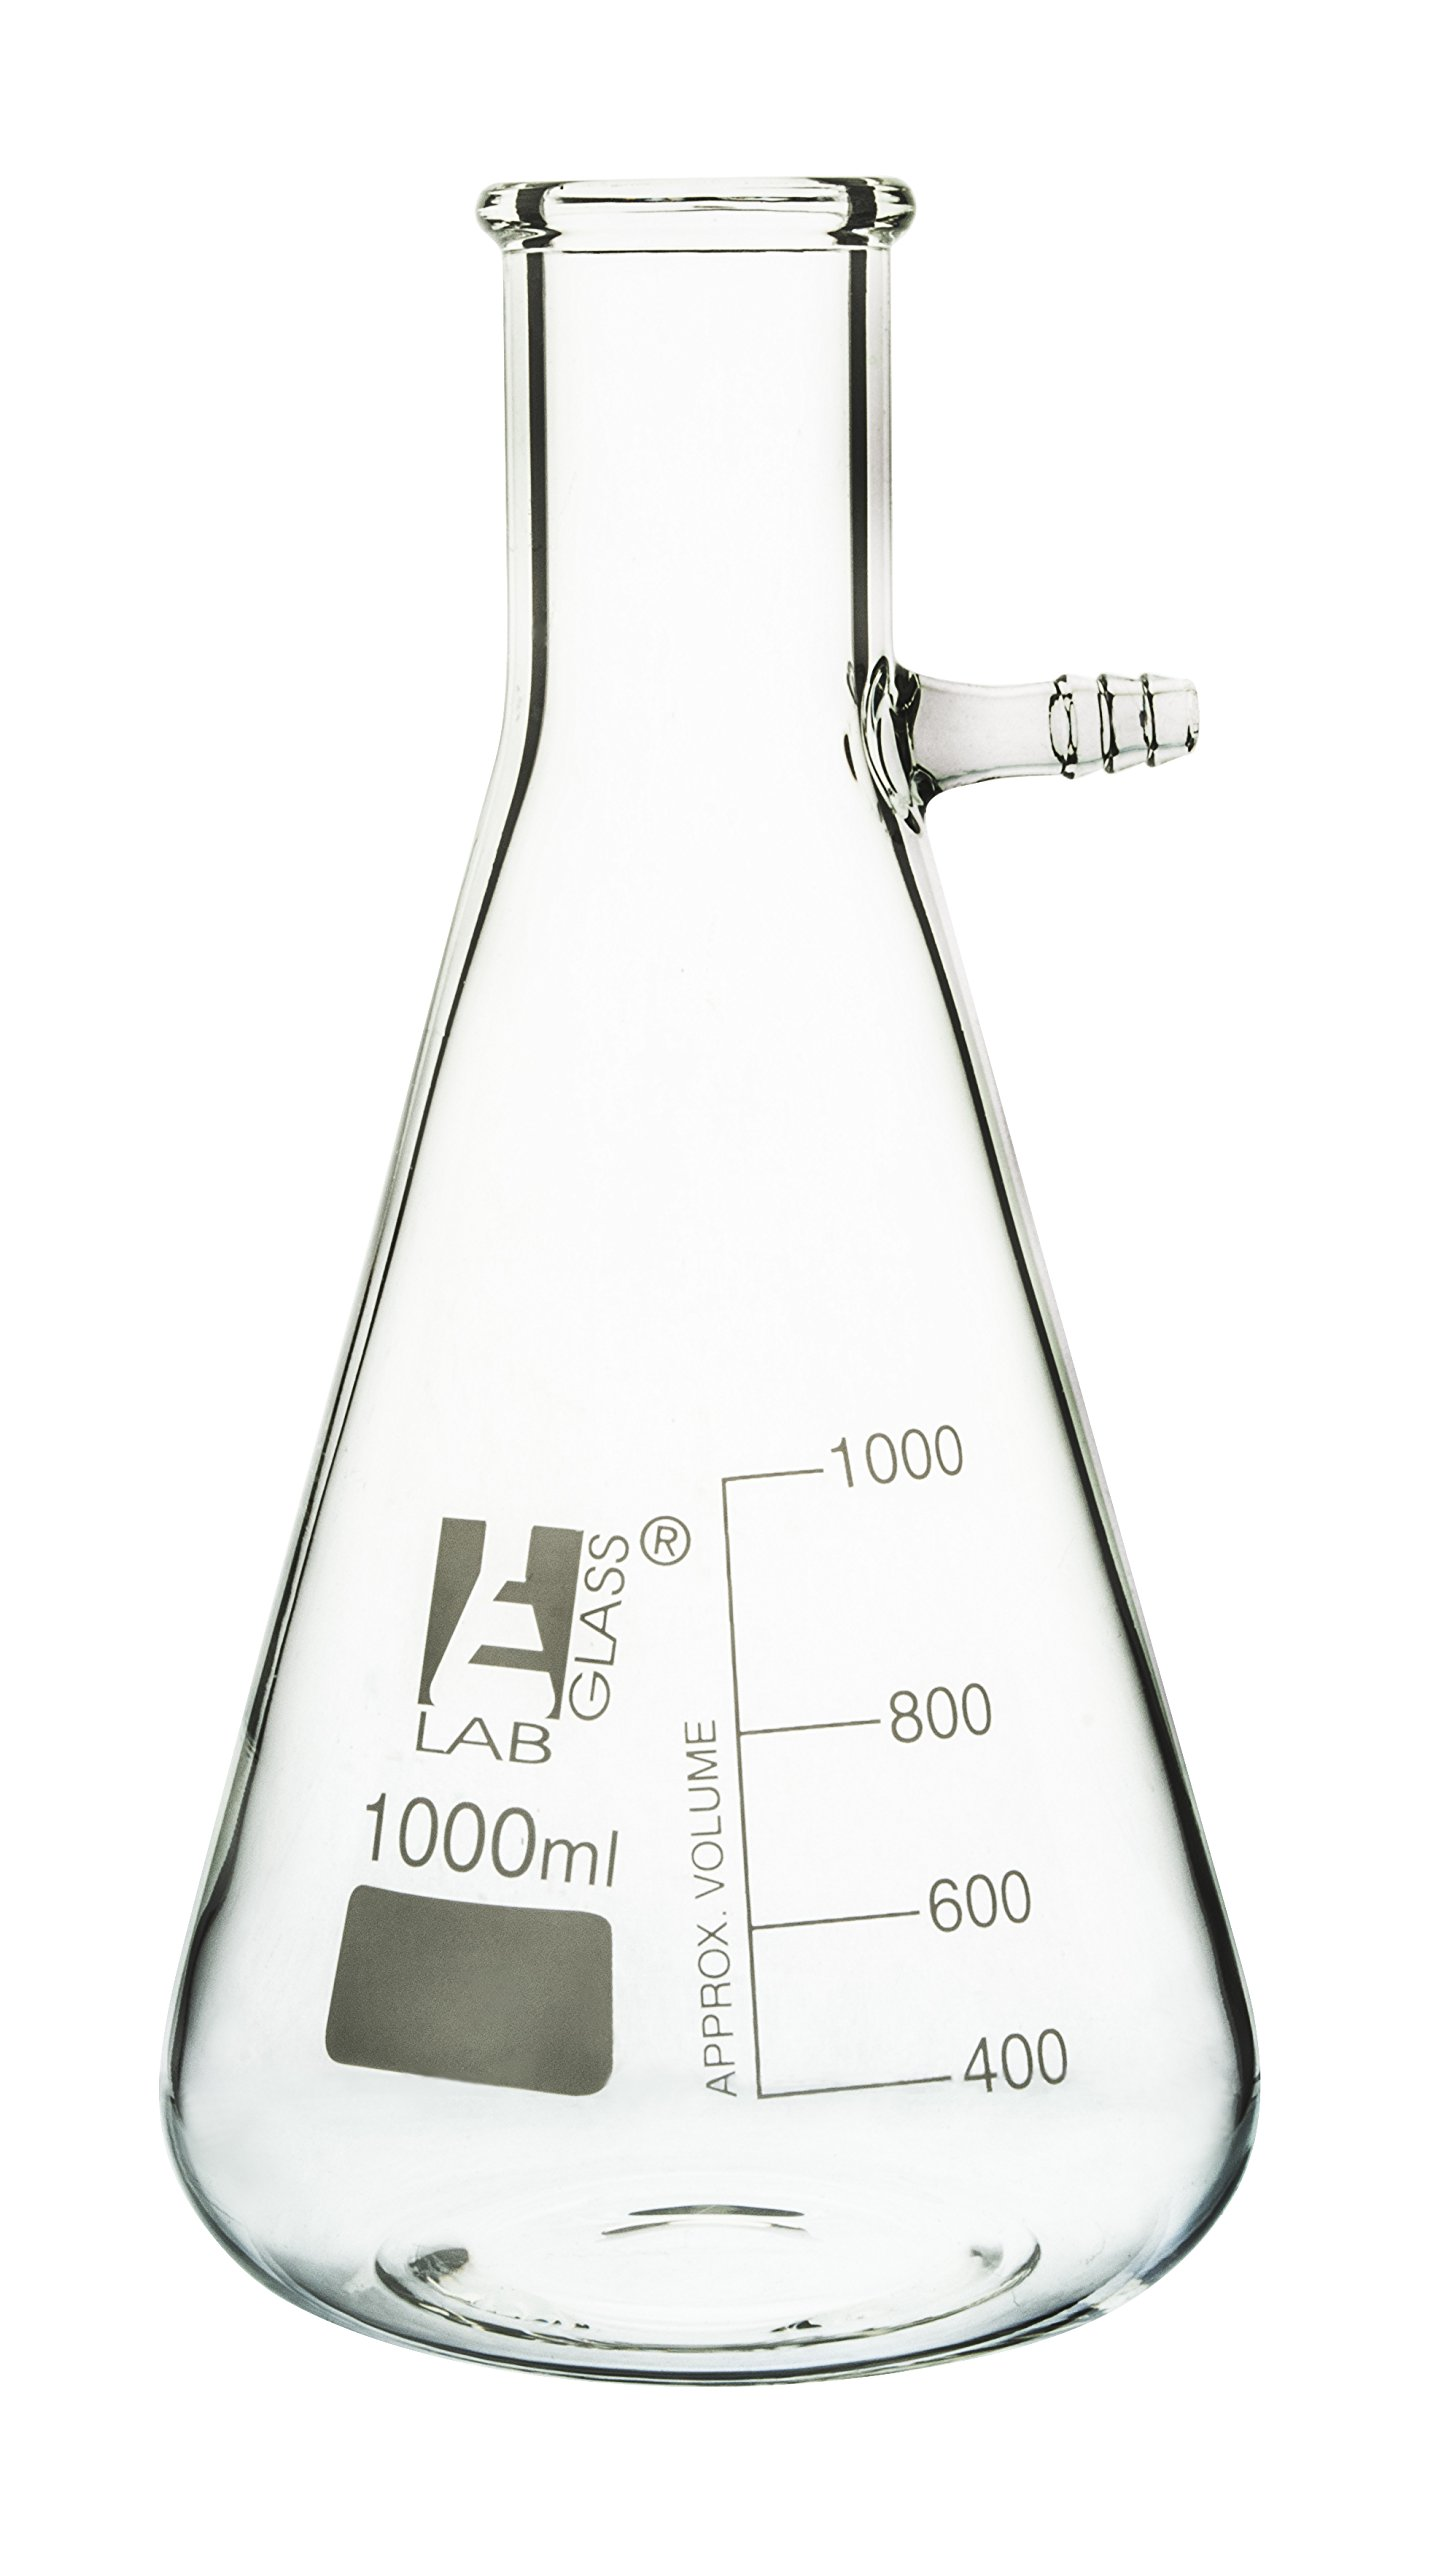 Filtering Flask, 1000ml - Borosilicate Glass - Conical Shape, with Integral Side Arm - White Graduations - Eisco Labs by EISCO